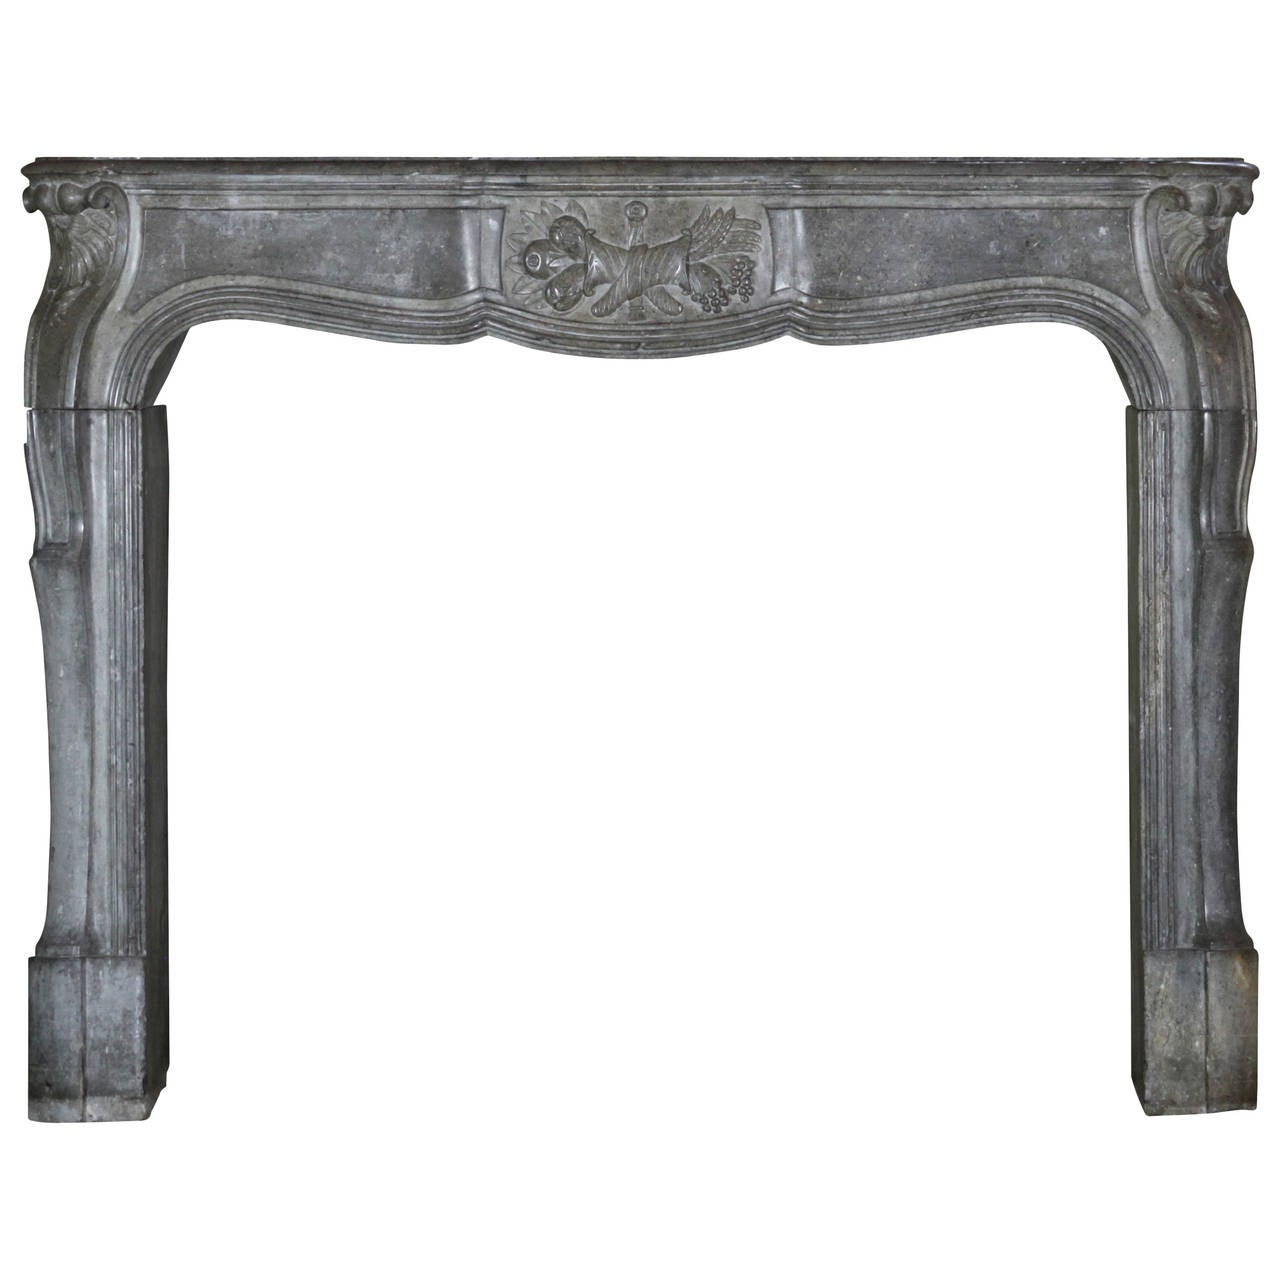 Antique Fireplace Mantels For Sale 18th Century Louis Xiv Transition Regency Antique Fireplace Mantel